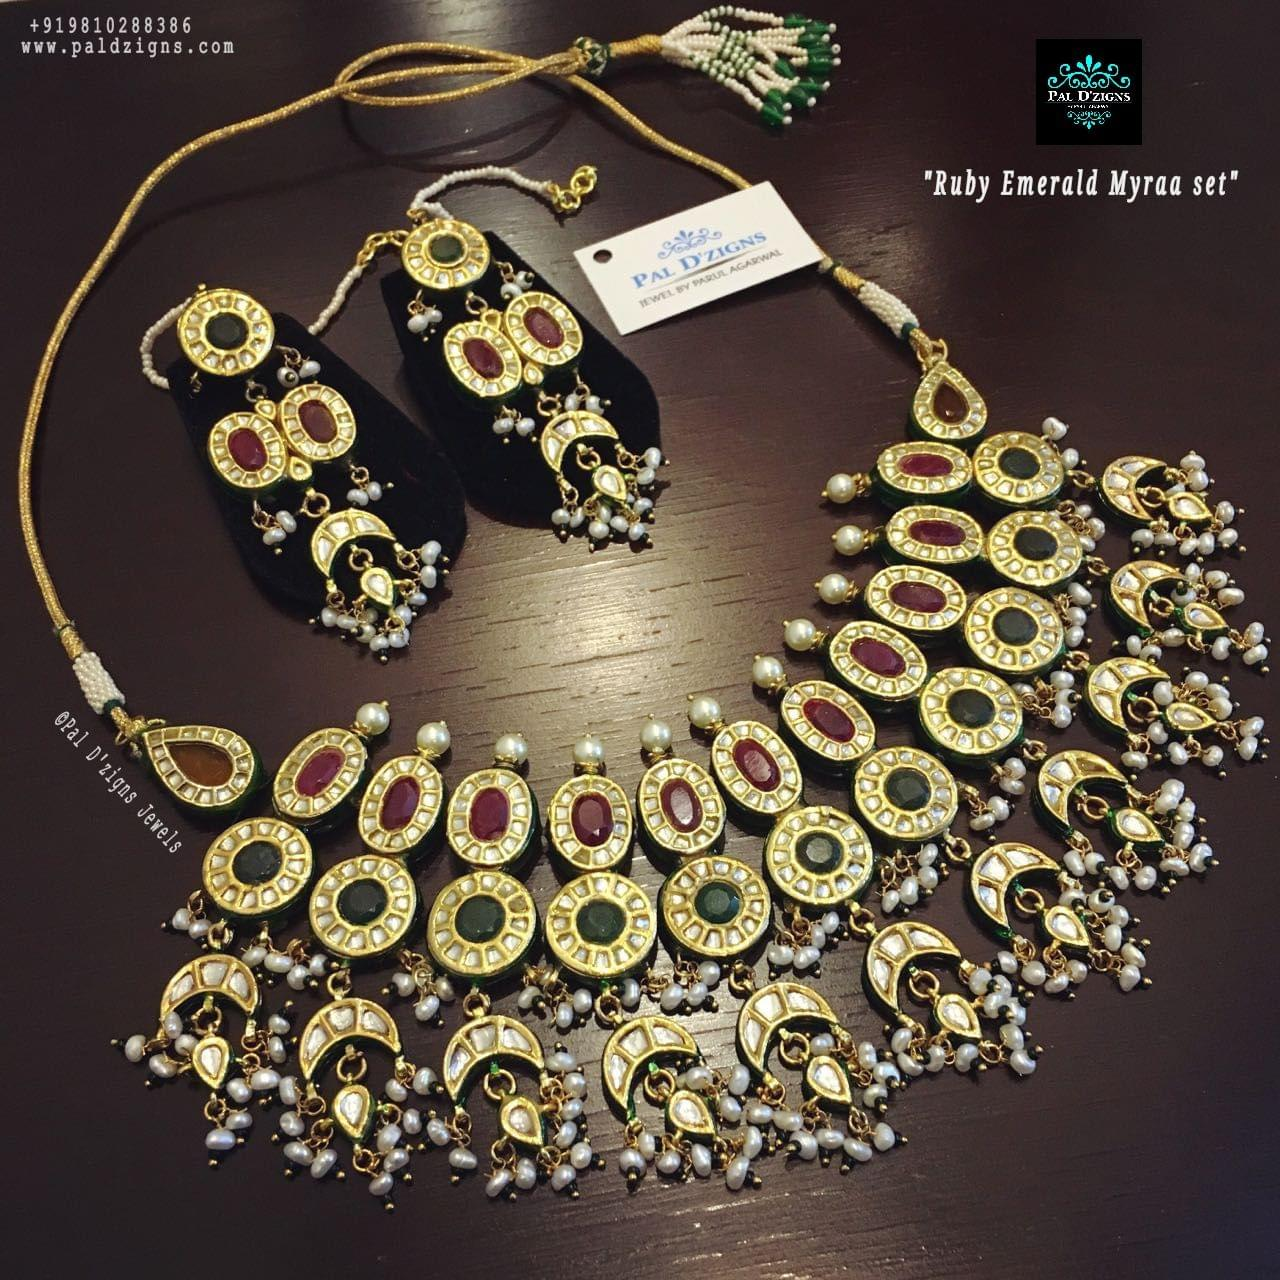 Ruby Emerald Myraa Set